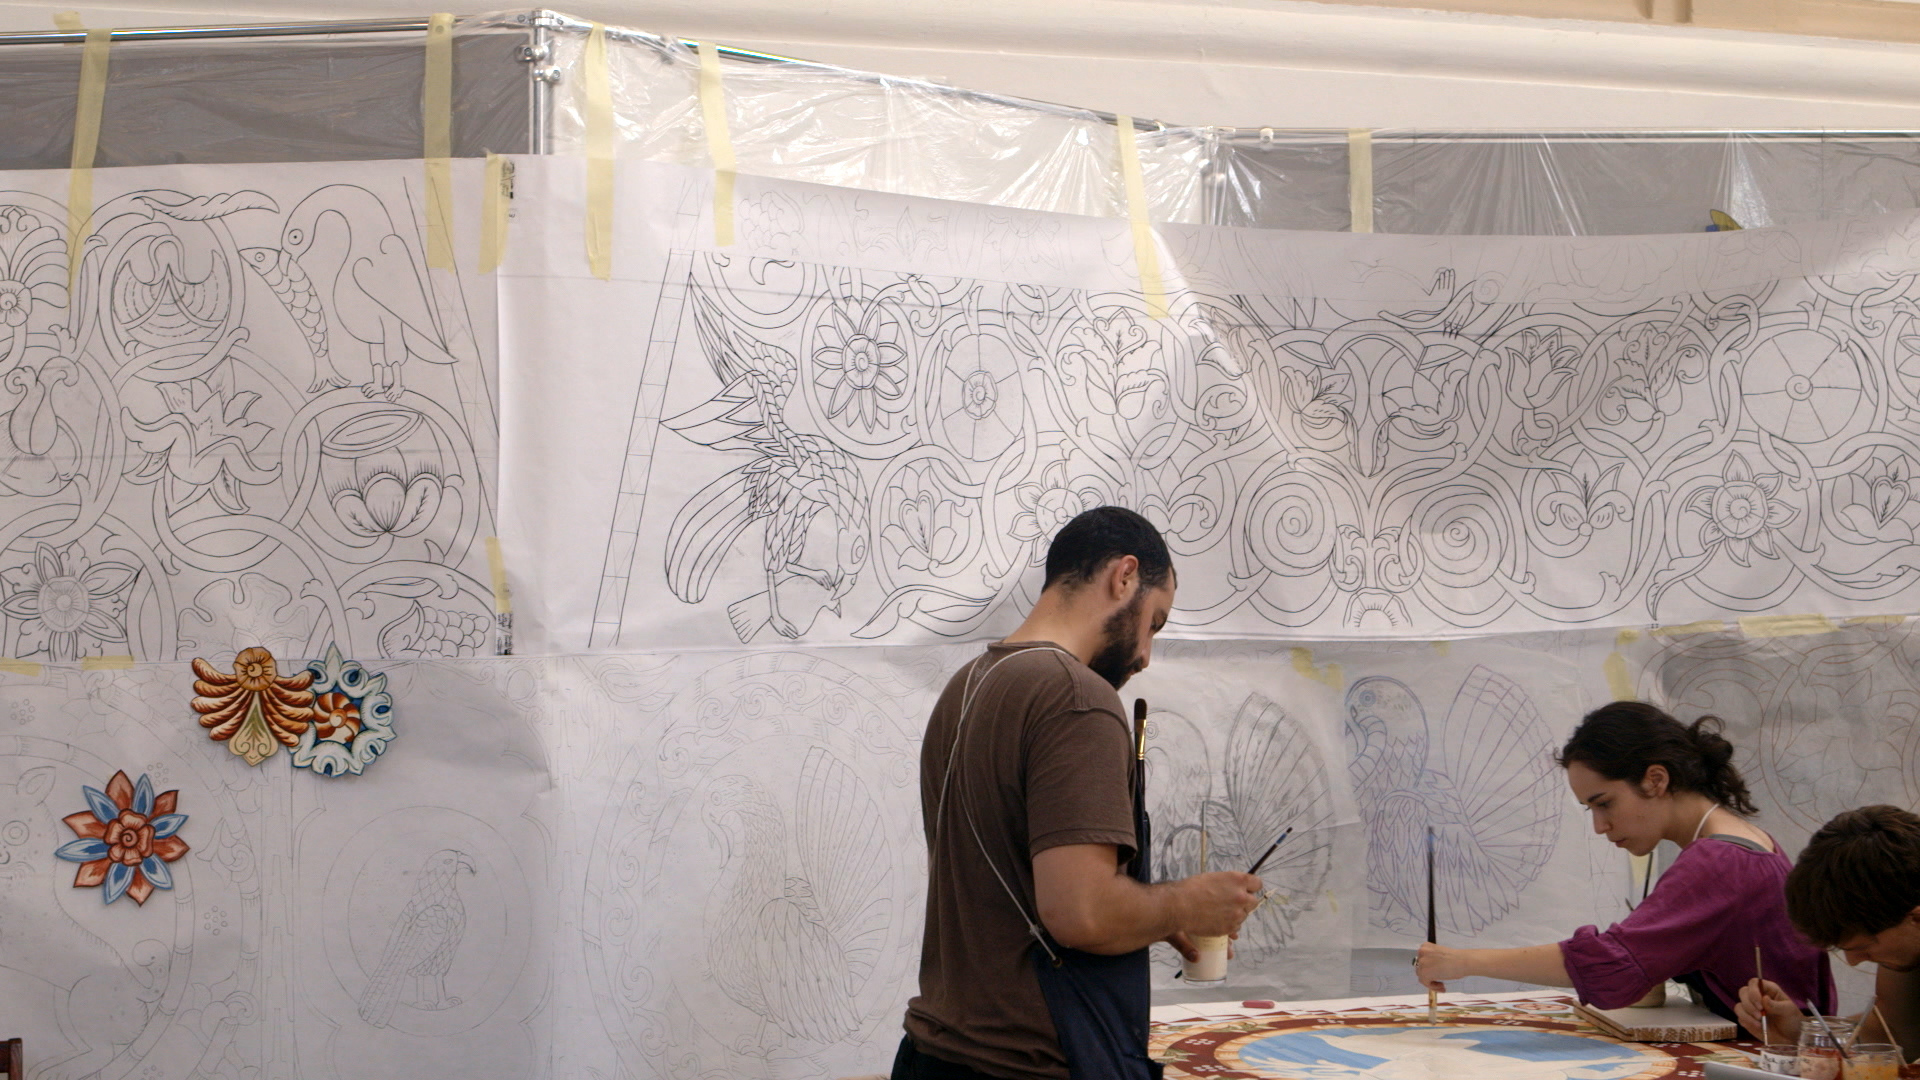 Still 28:  Jason Loik and Evelyn Tauben painting the backward facing deer in front of the tracings for the south dome.